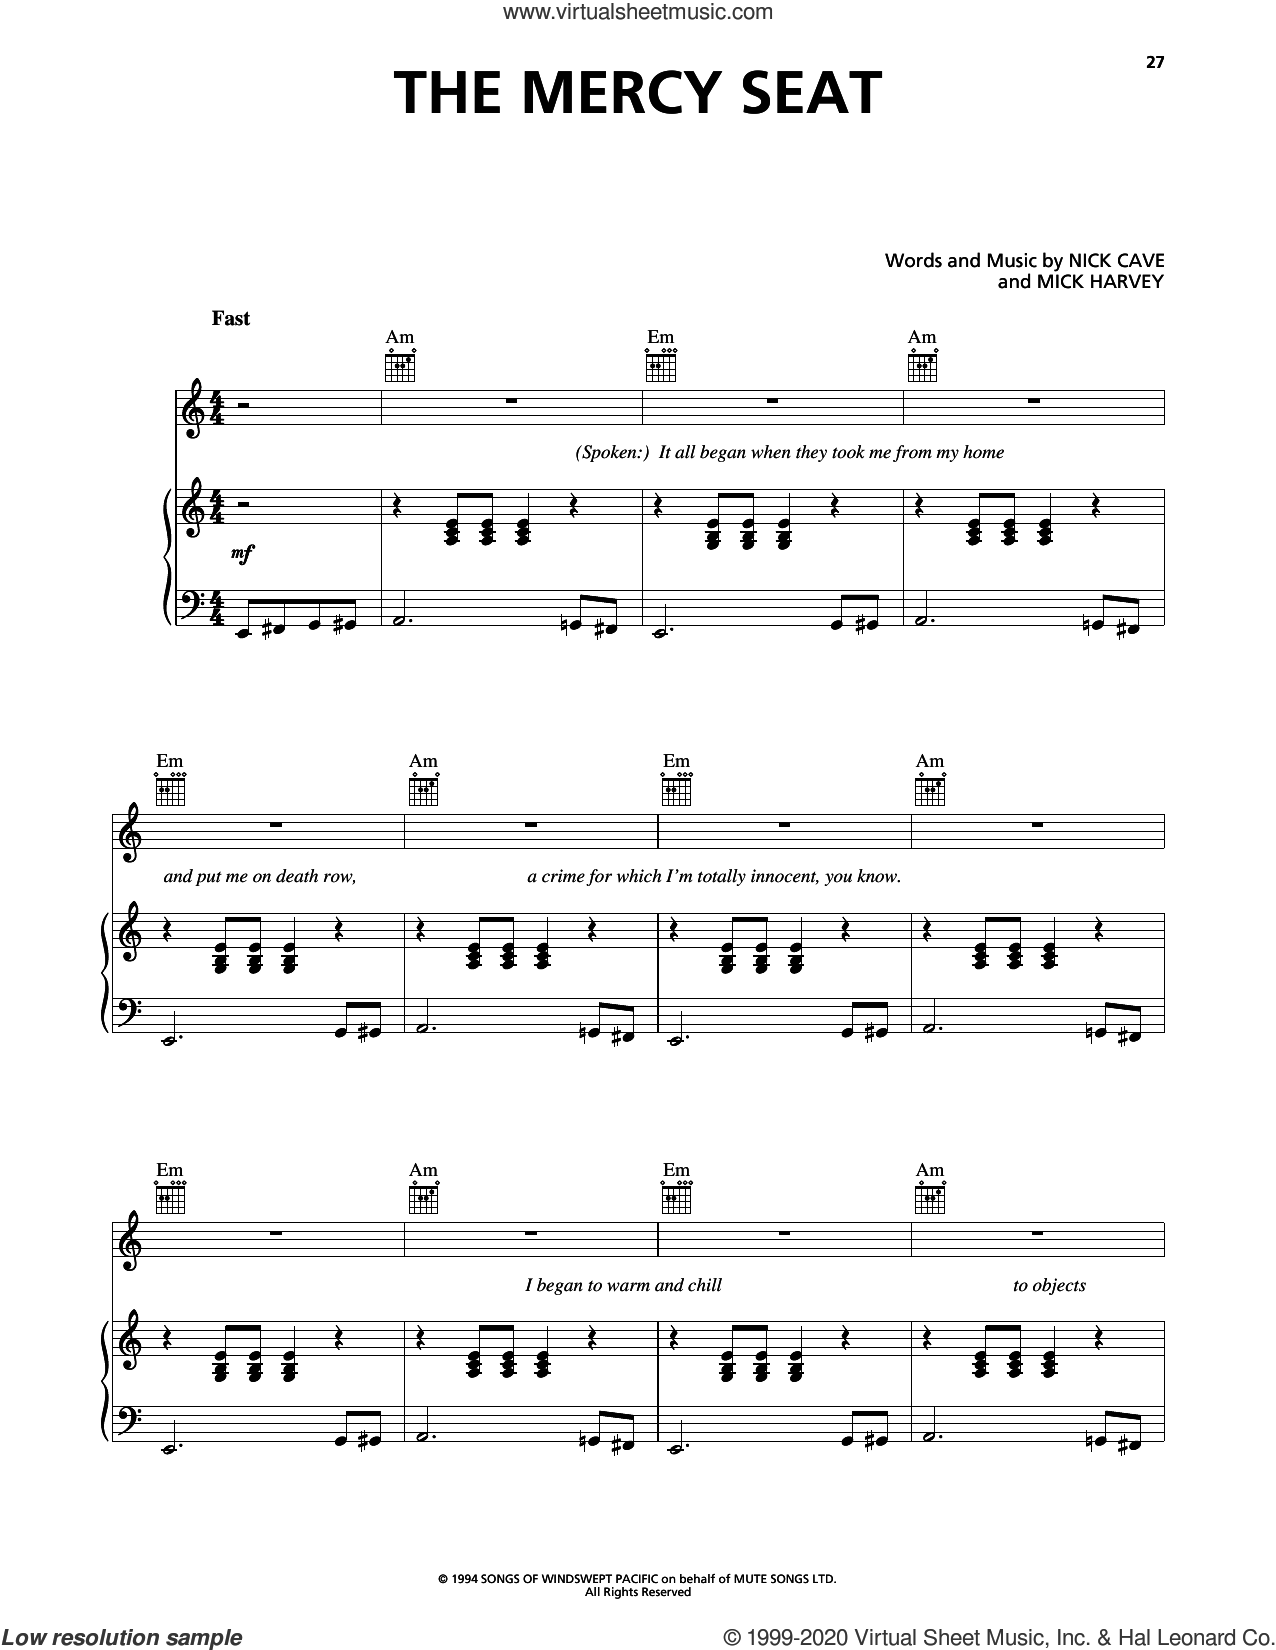 The Mercy Seat sheet music for voice, piano or guitar by Johnny Cash, Mick Harvey and Nick Cave, intermediate skill level